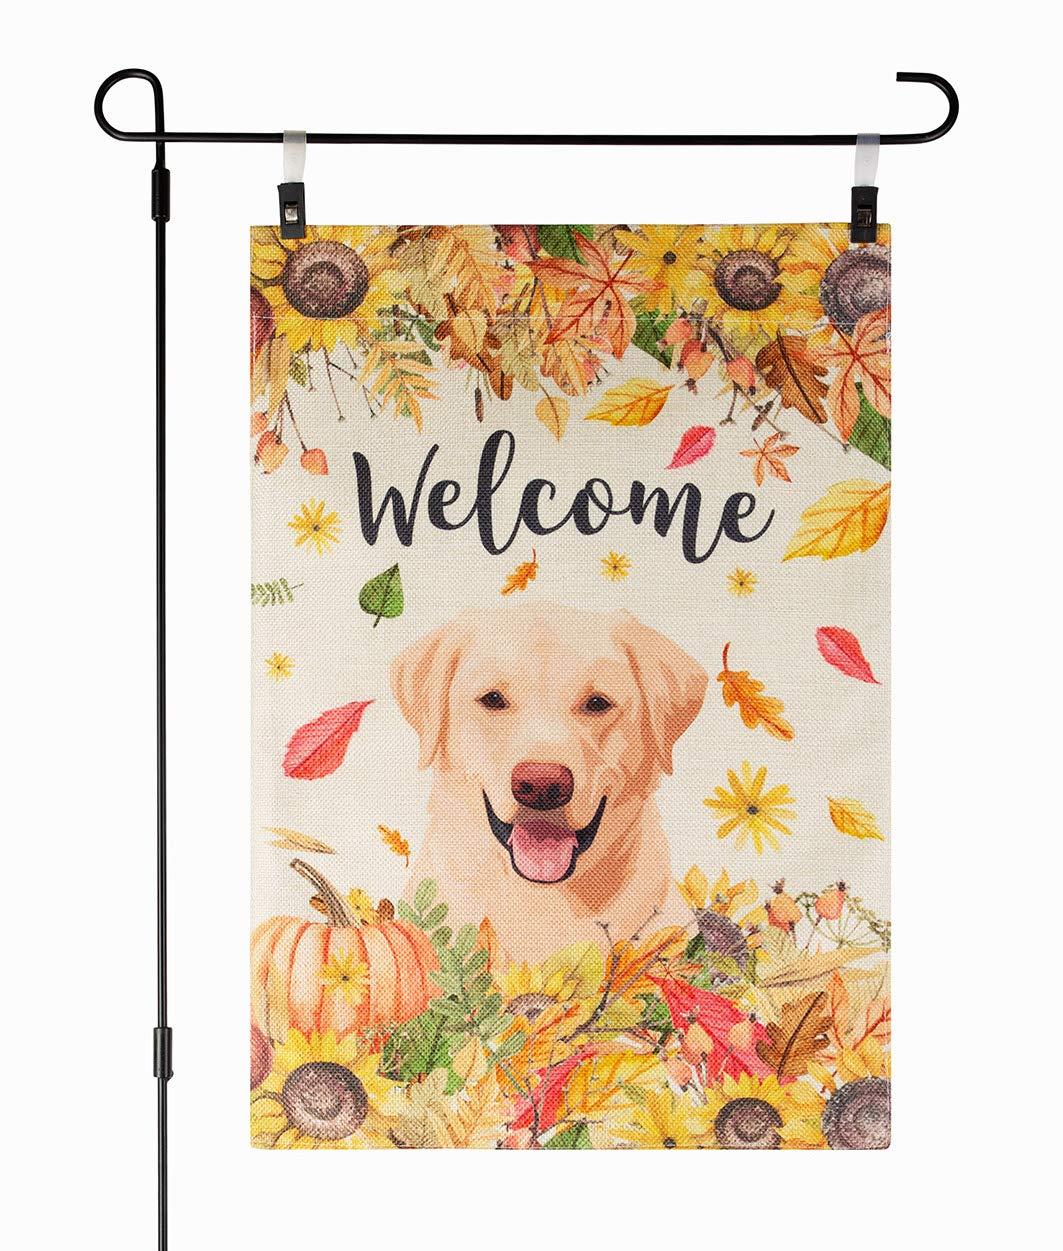 Fall Garden Flag with Dog Yellow Labrador Retriever, 12 x 18 Inch, Welcome Autumn, Halloween Thanksgiving, Double Sided Burlap, Yellow Lab, Sunflowers Flowers, Orange October Fall Yard Decor